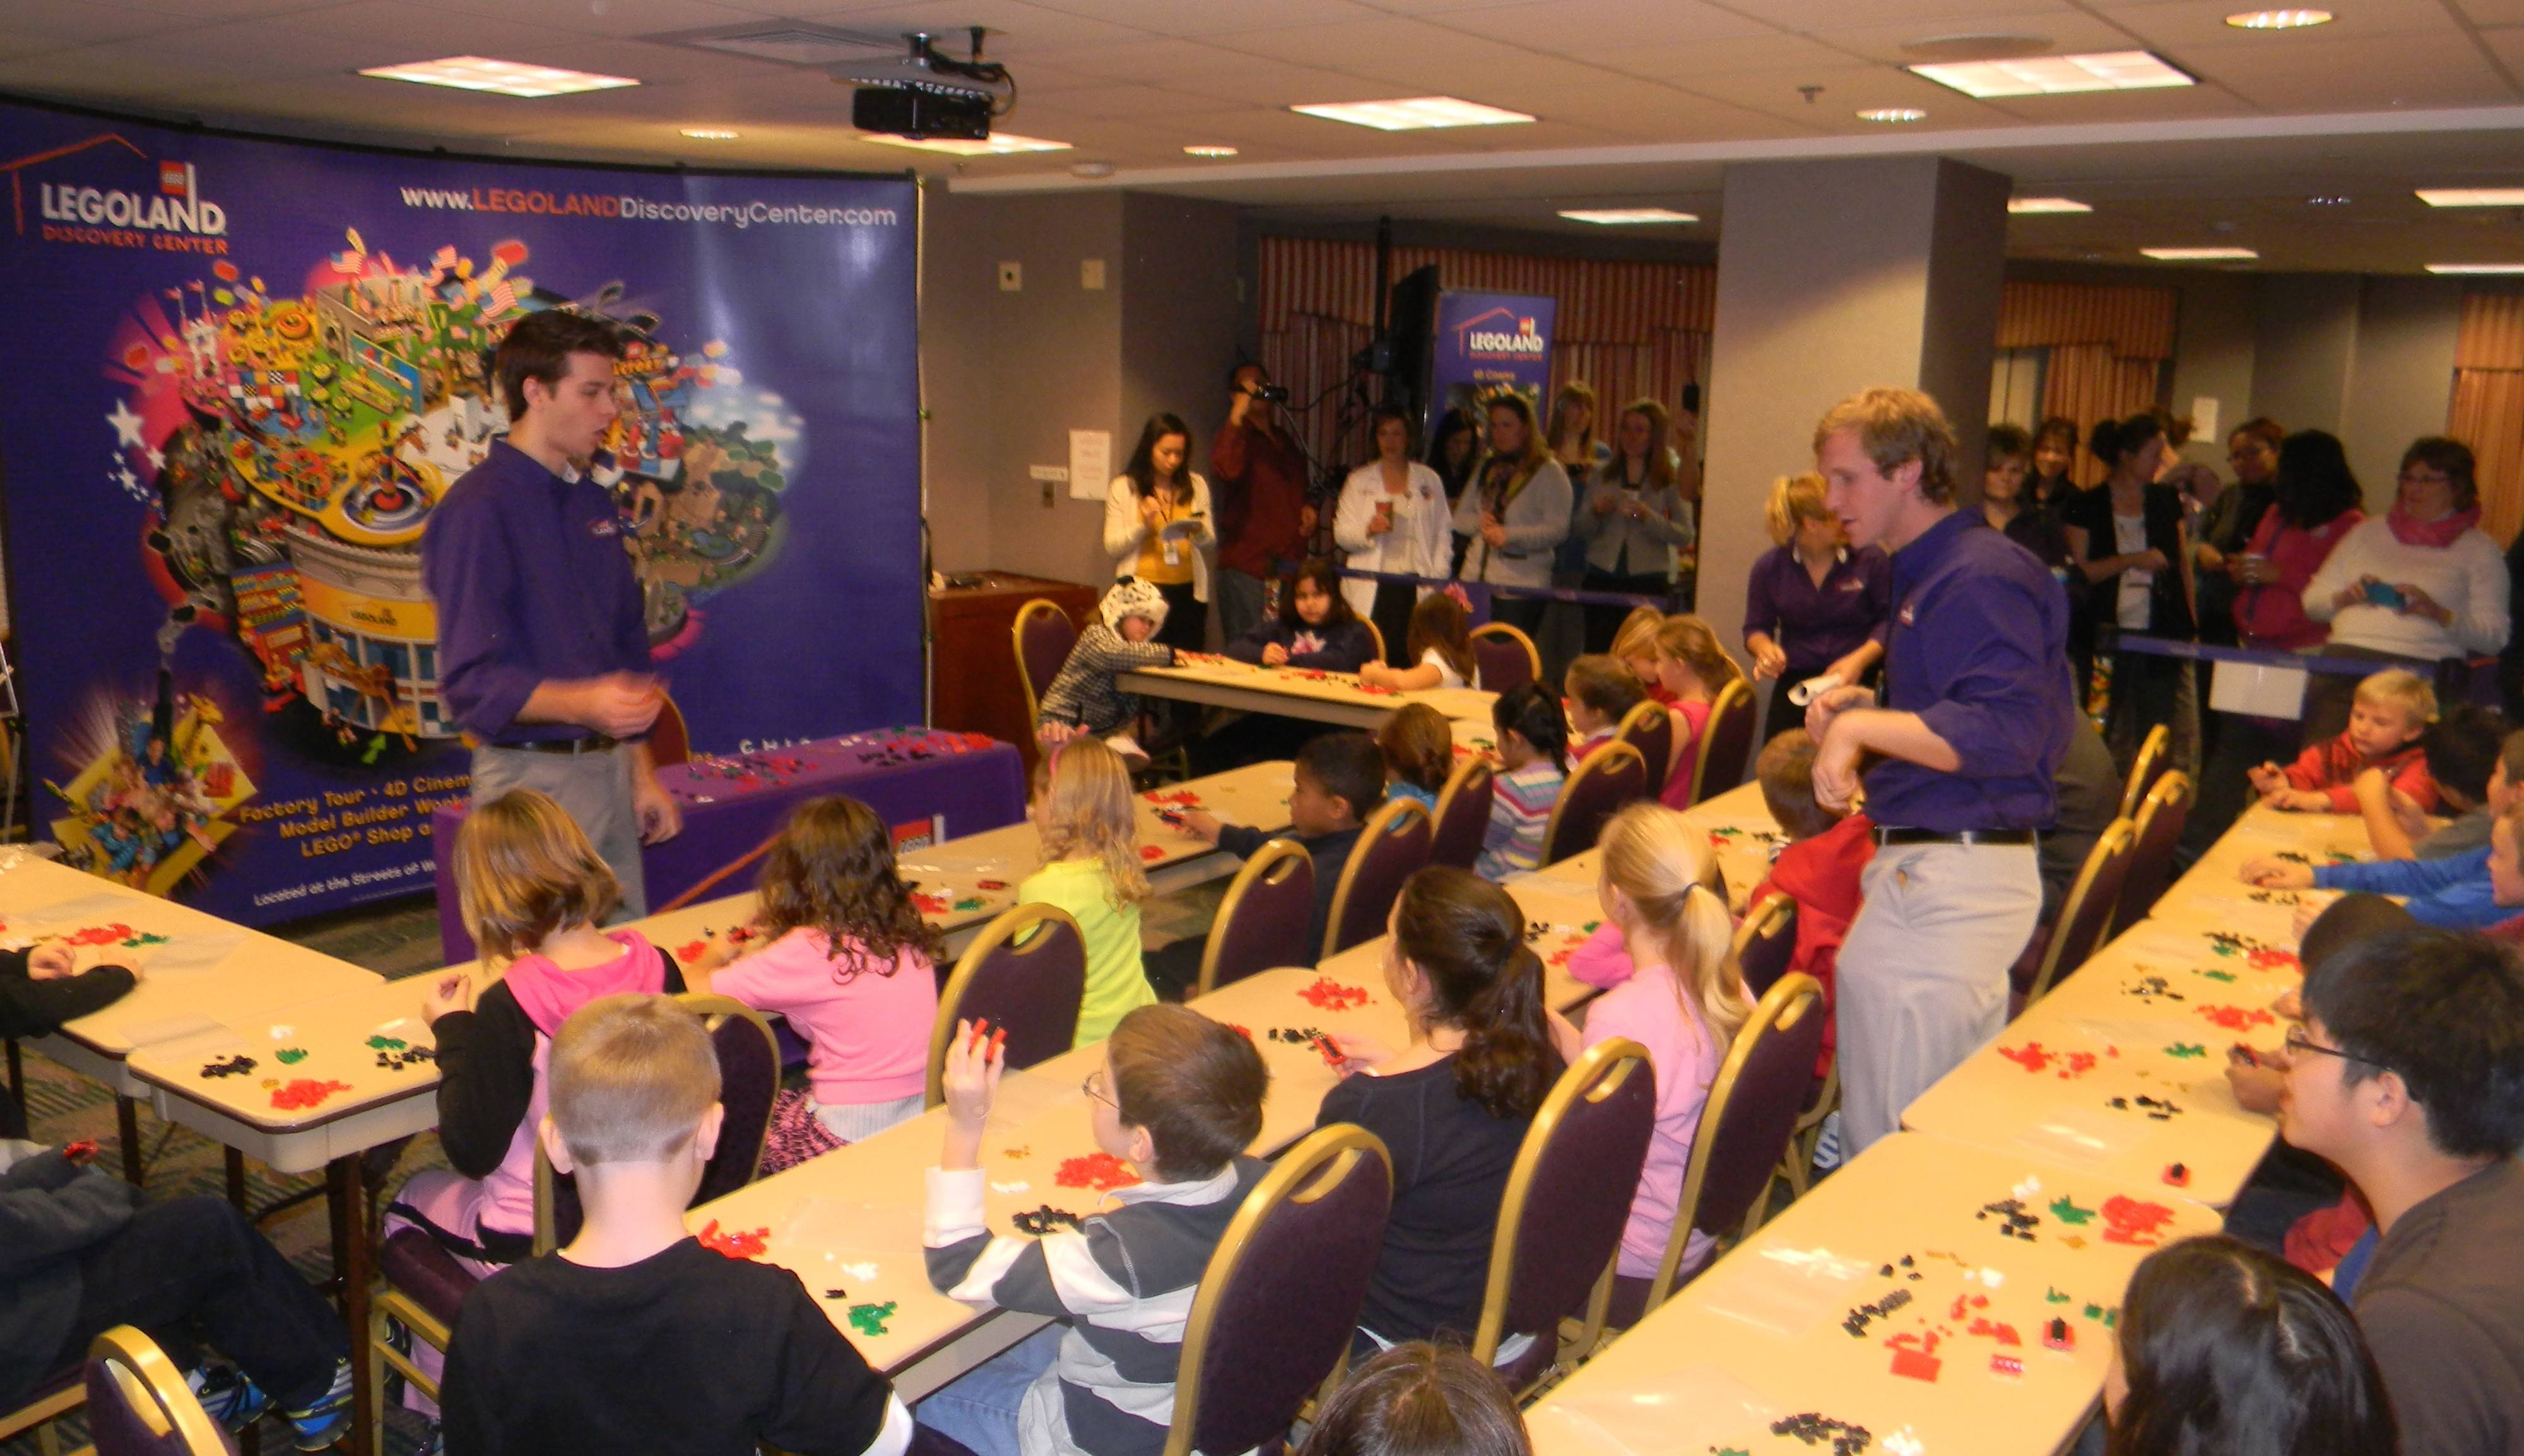 LEGOLAND Discovery Center Chicago's Andrew Johnson, left, and David Specha, right, successfully lead the model building workshop with children of the St. Alexius Medical Center community, achieving the Guinness World Record for the largest toy building lesson.